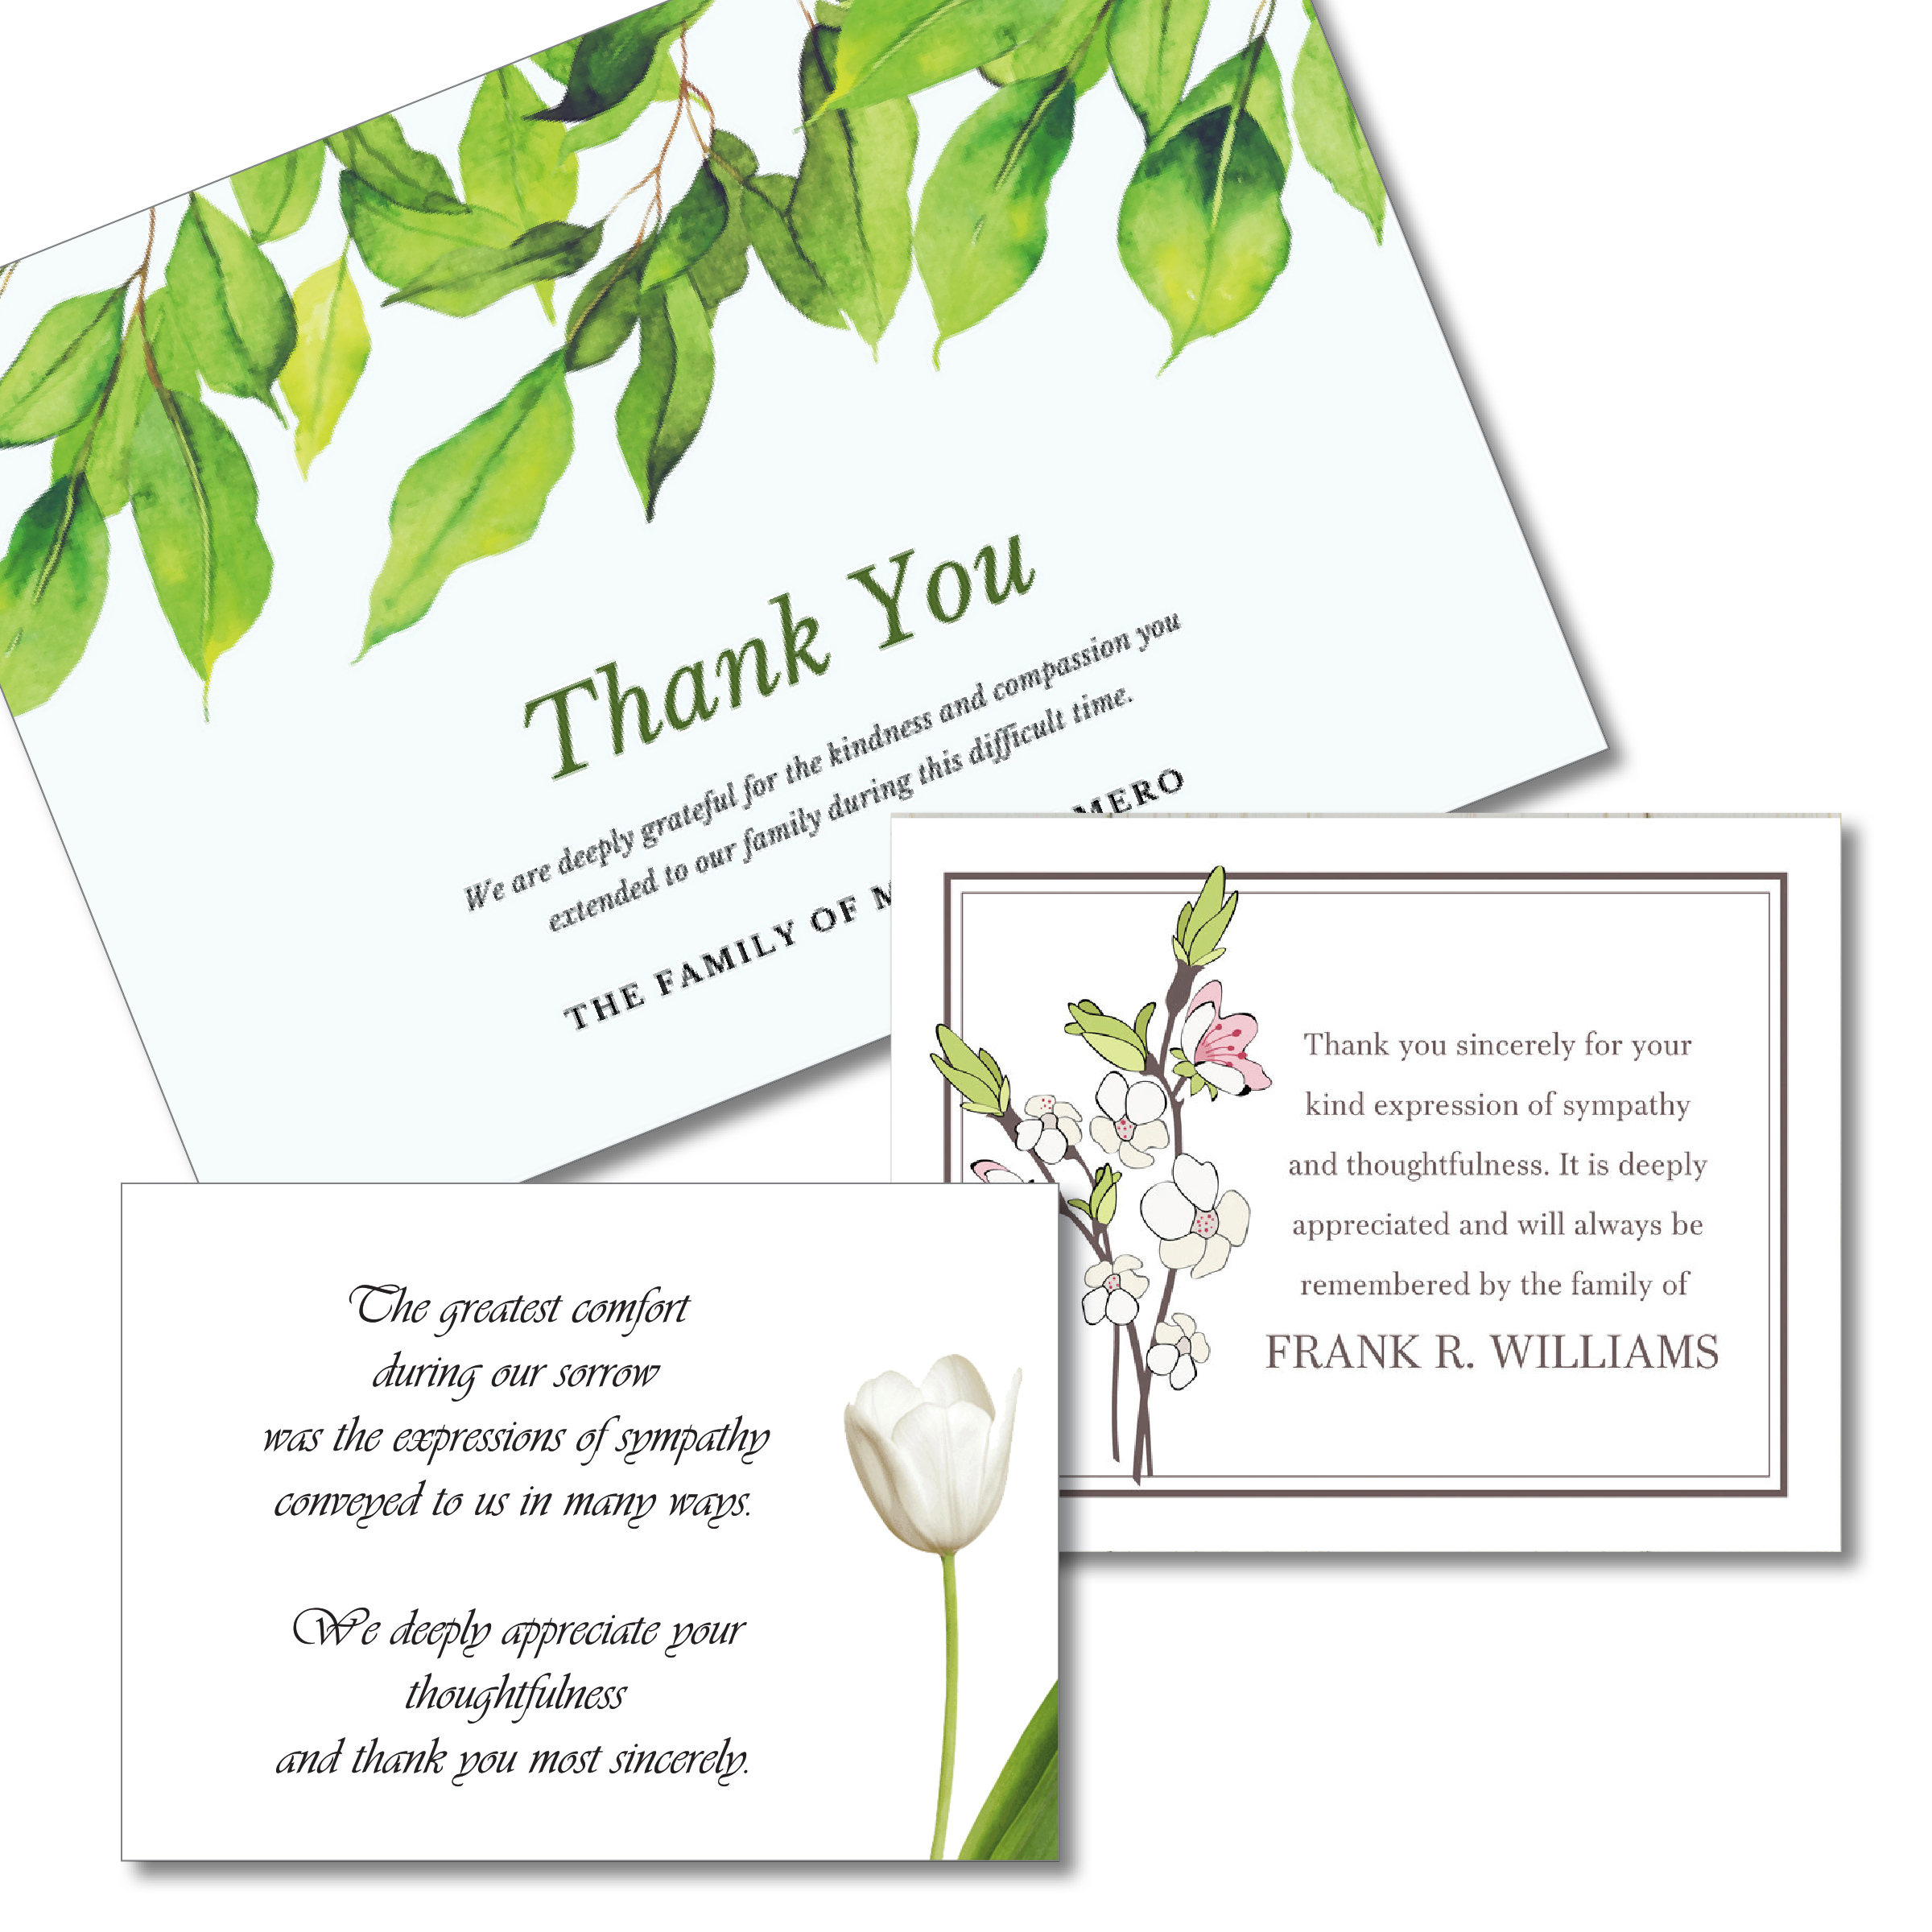 Funeral specialties archives 757 728 9770 localprinter4megmail bereavement thank you cards izmirmasajfo